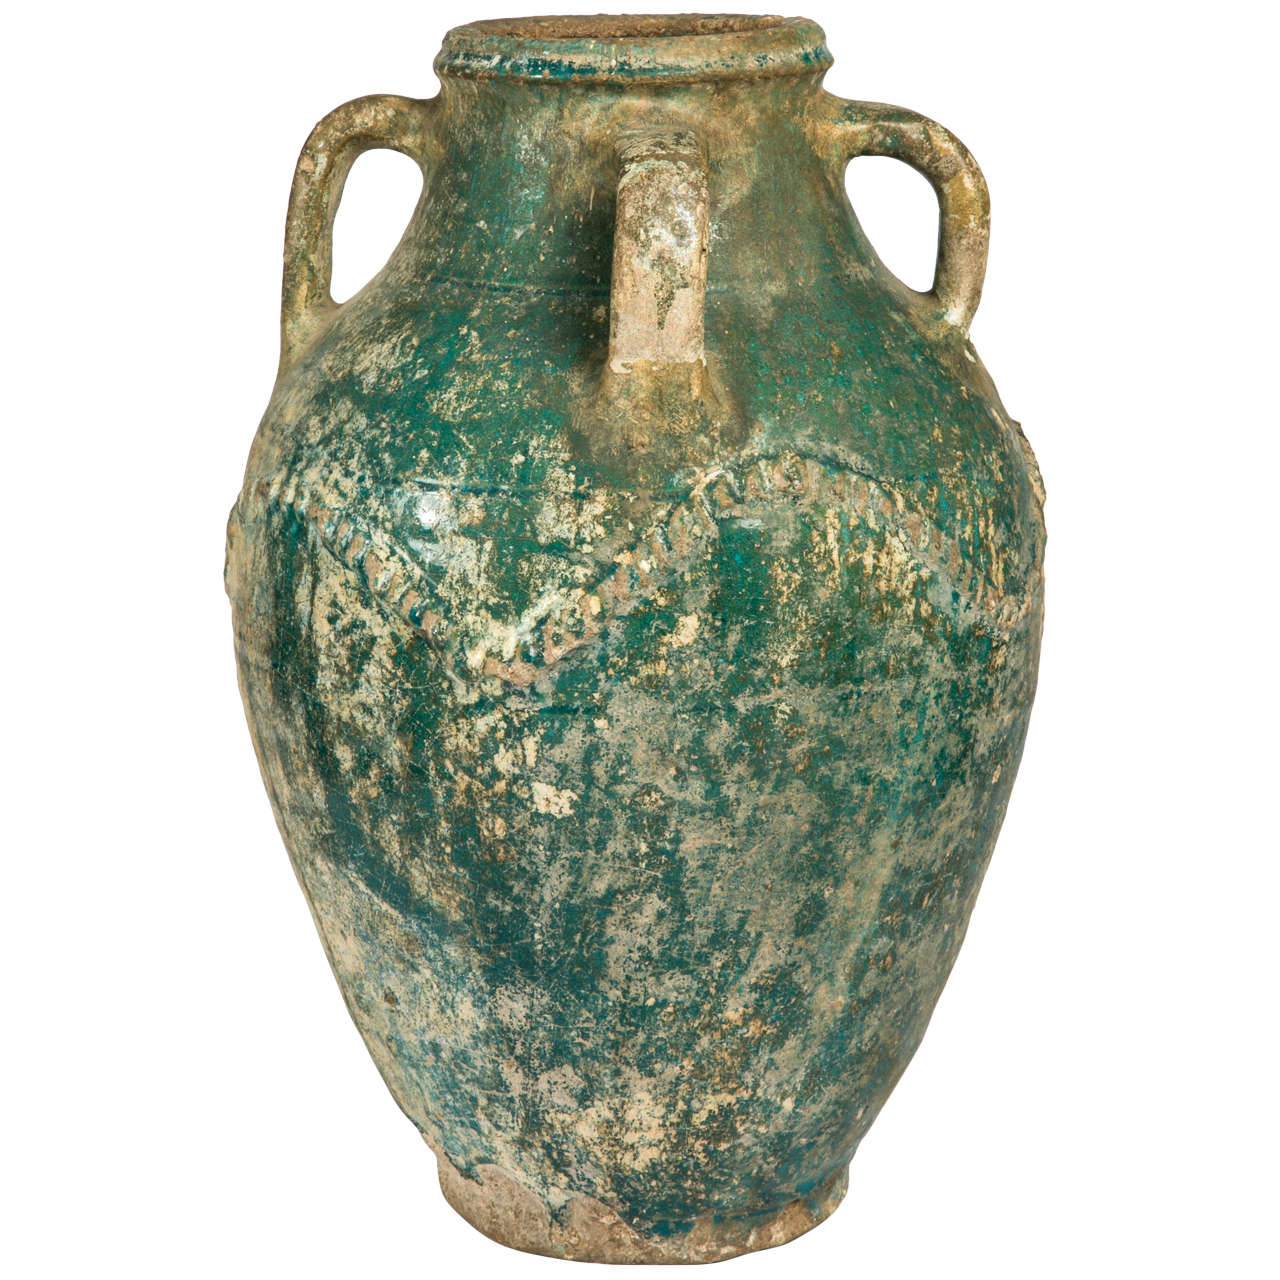 10th century Islamic Jar